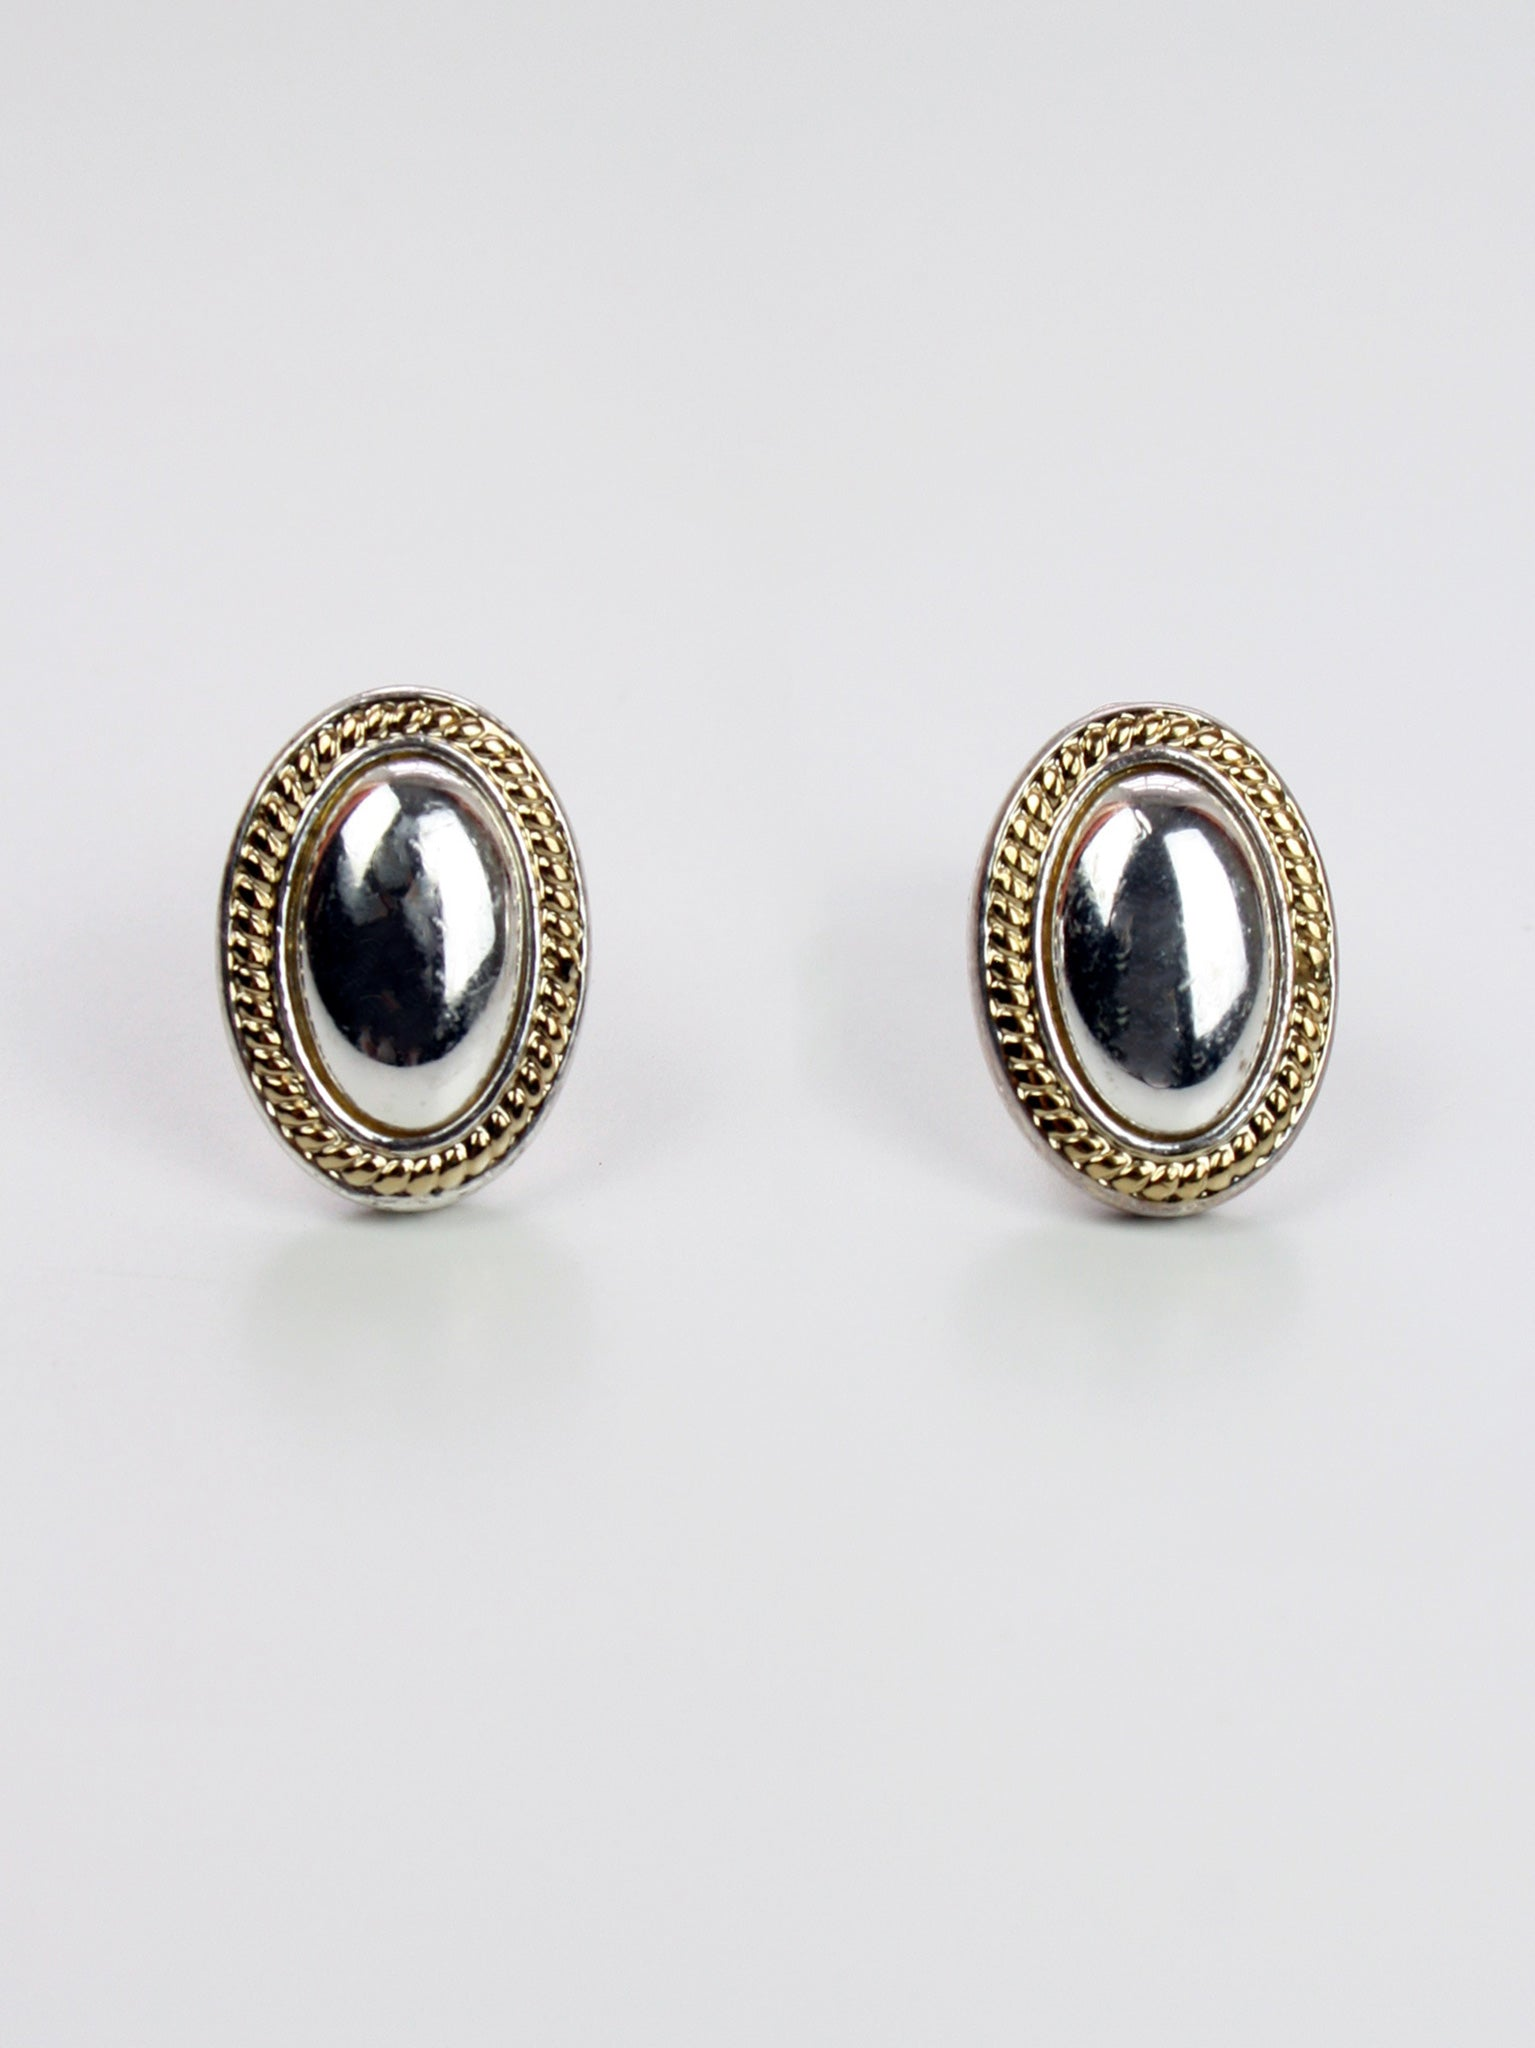 Silver Clip-on Vintage Earrings